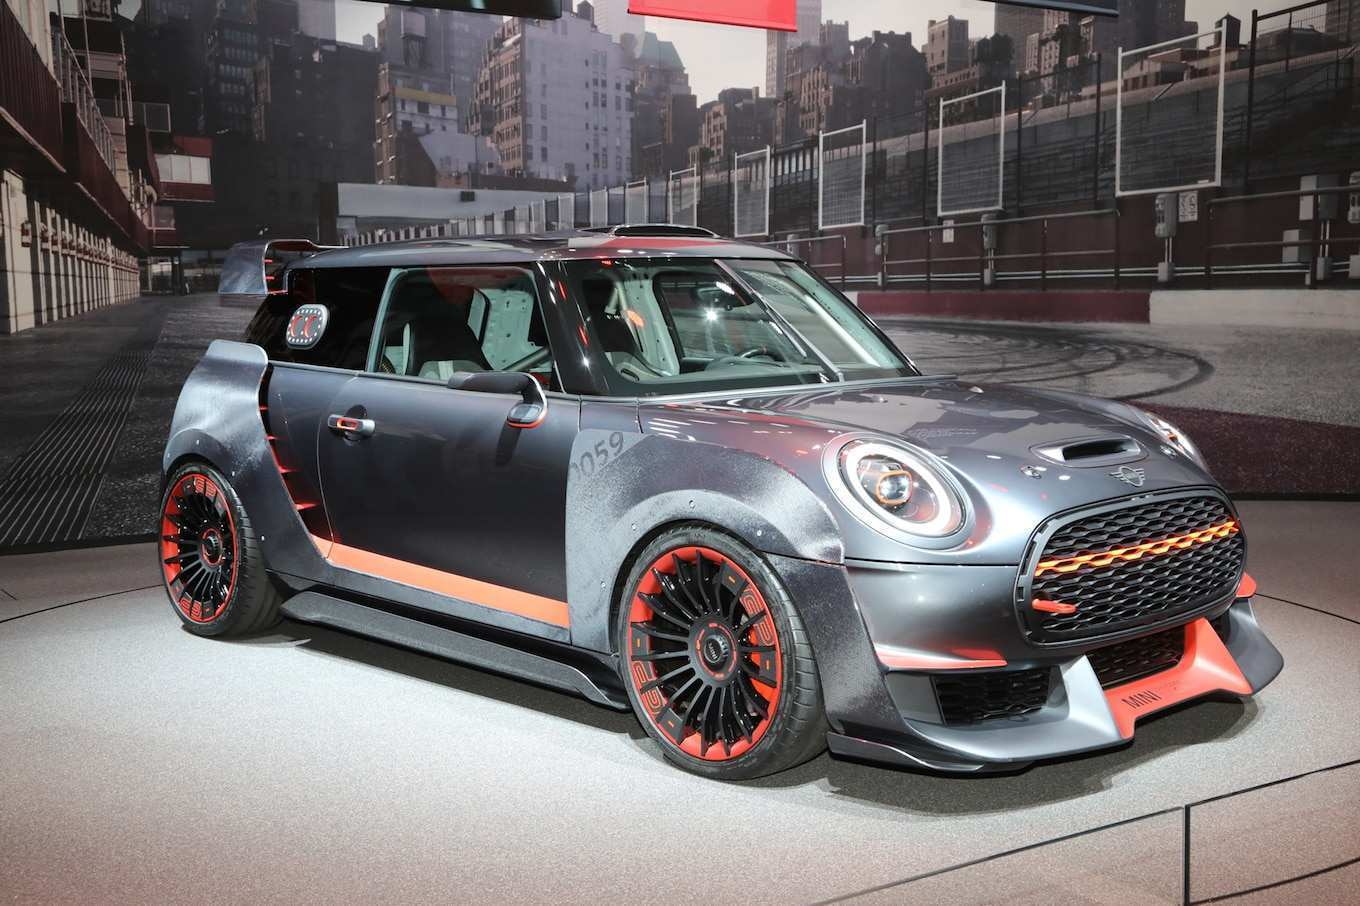 26 New 2020 Mini Countryman New Concept by 2020 Mini Countryman